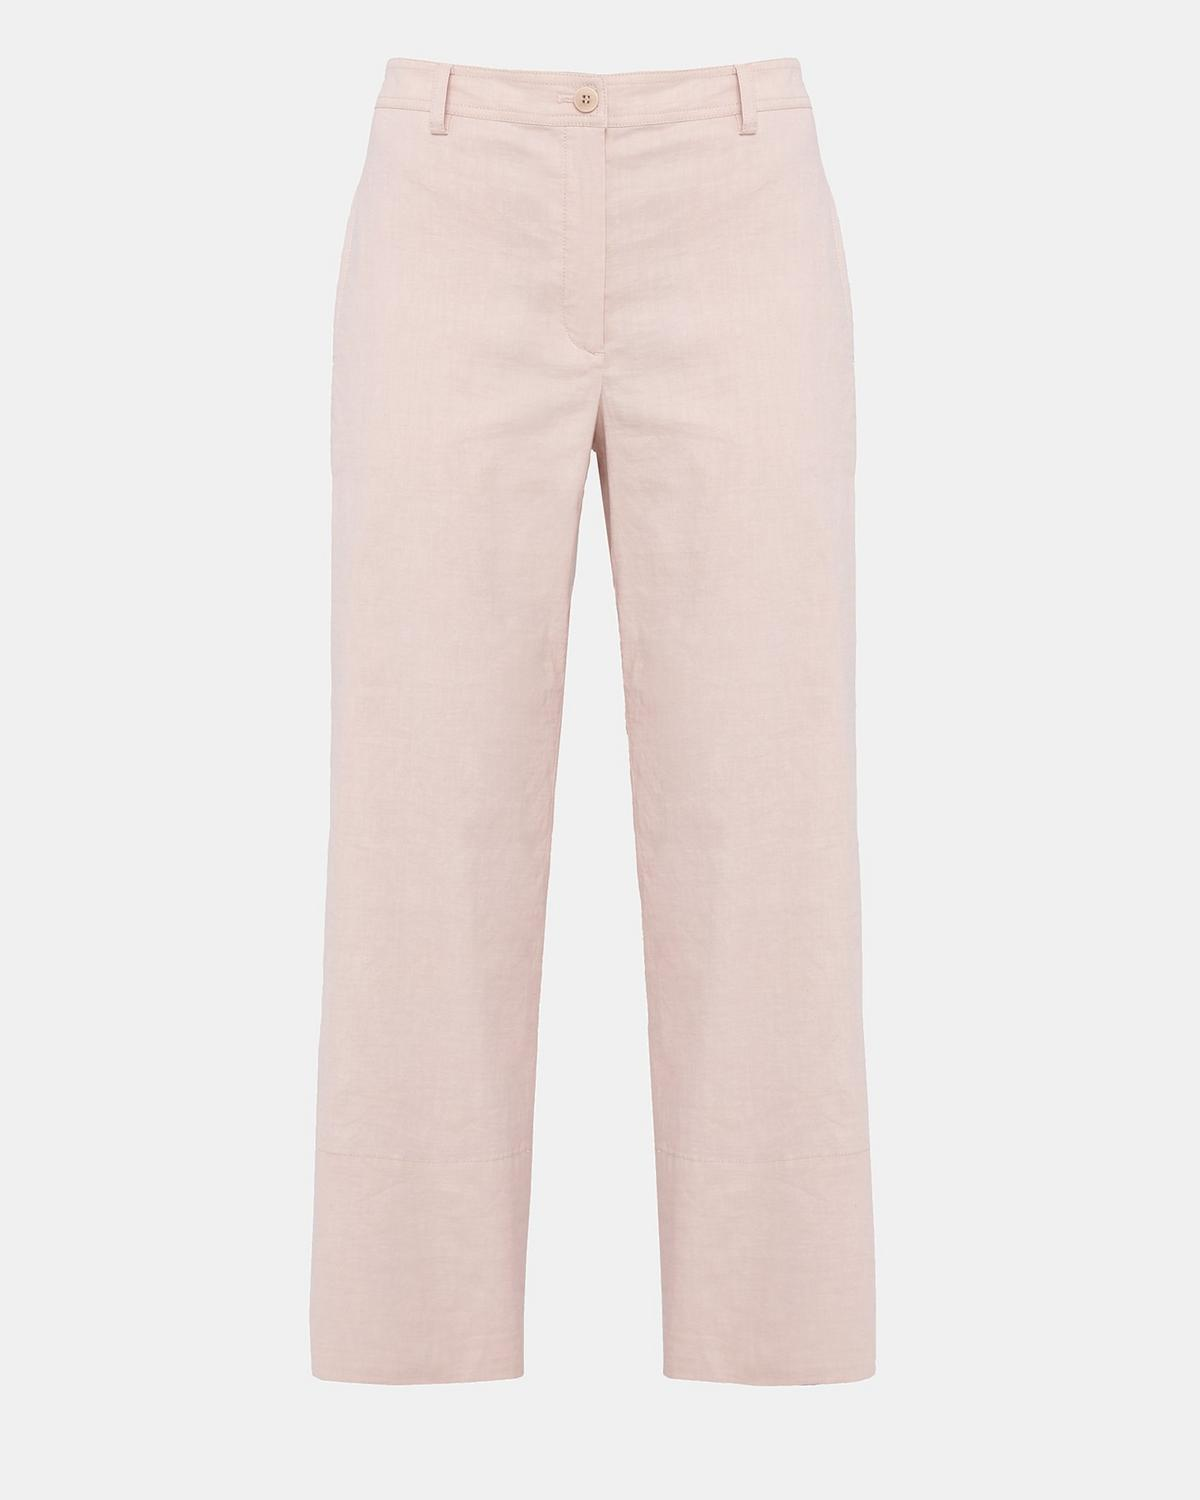 Organic Crunch Linen Fluid Pant by Theory